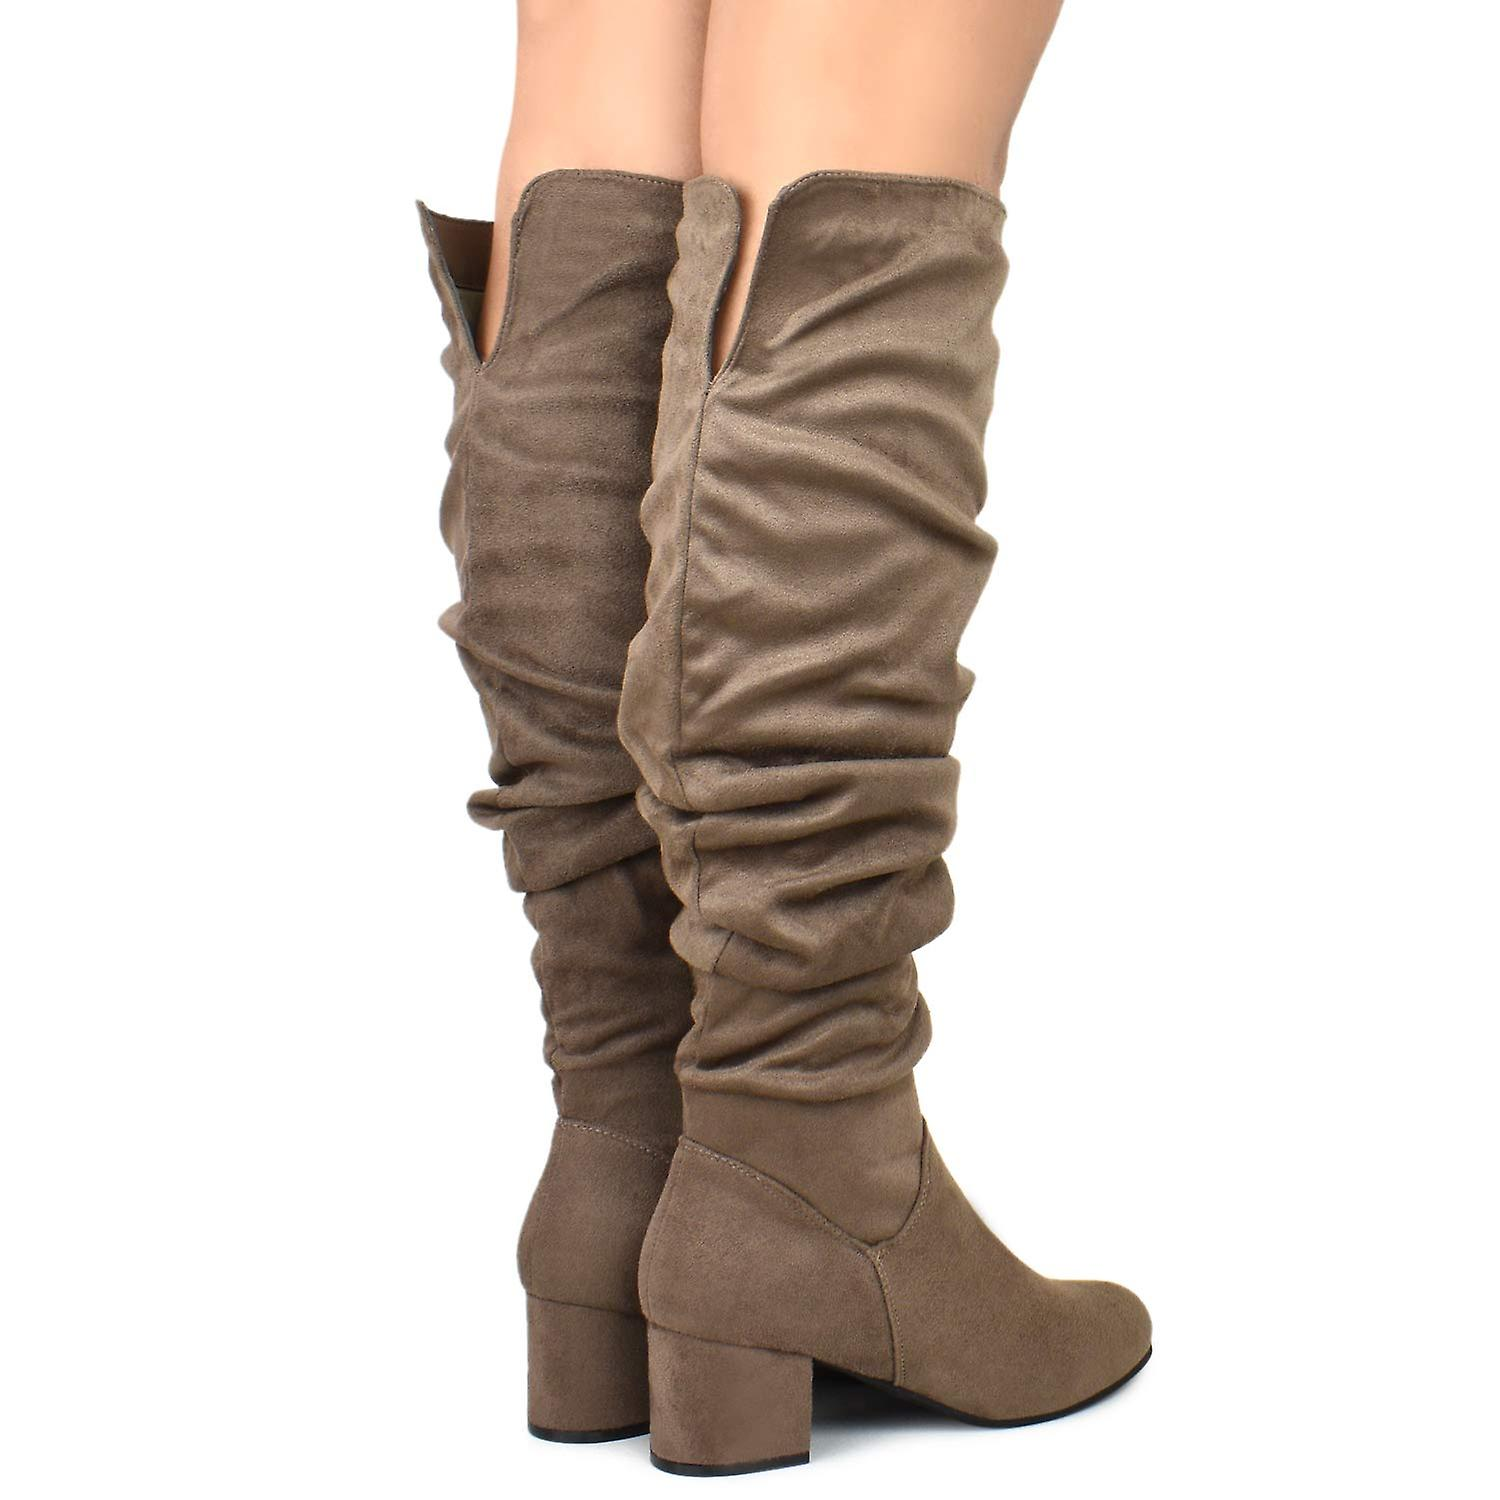 Nature Breeze Womens Bonita Suede Almond Toe Over Knee Fashion Boots